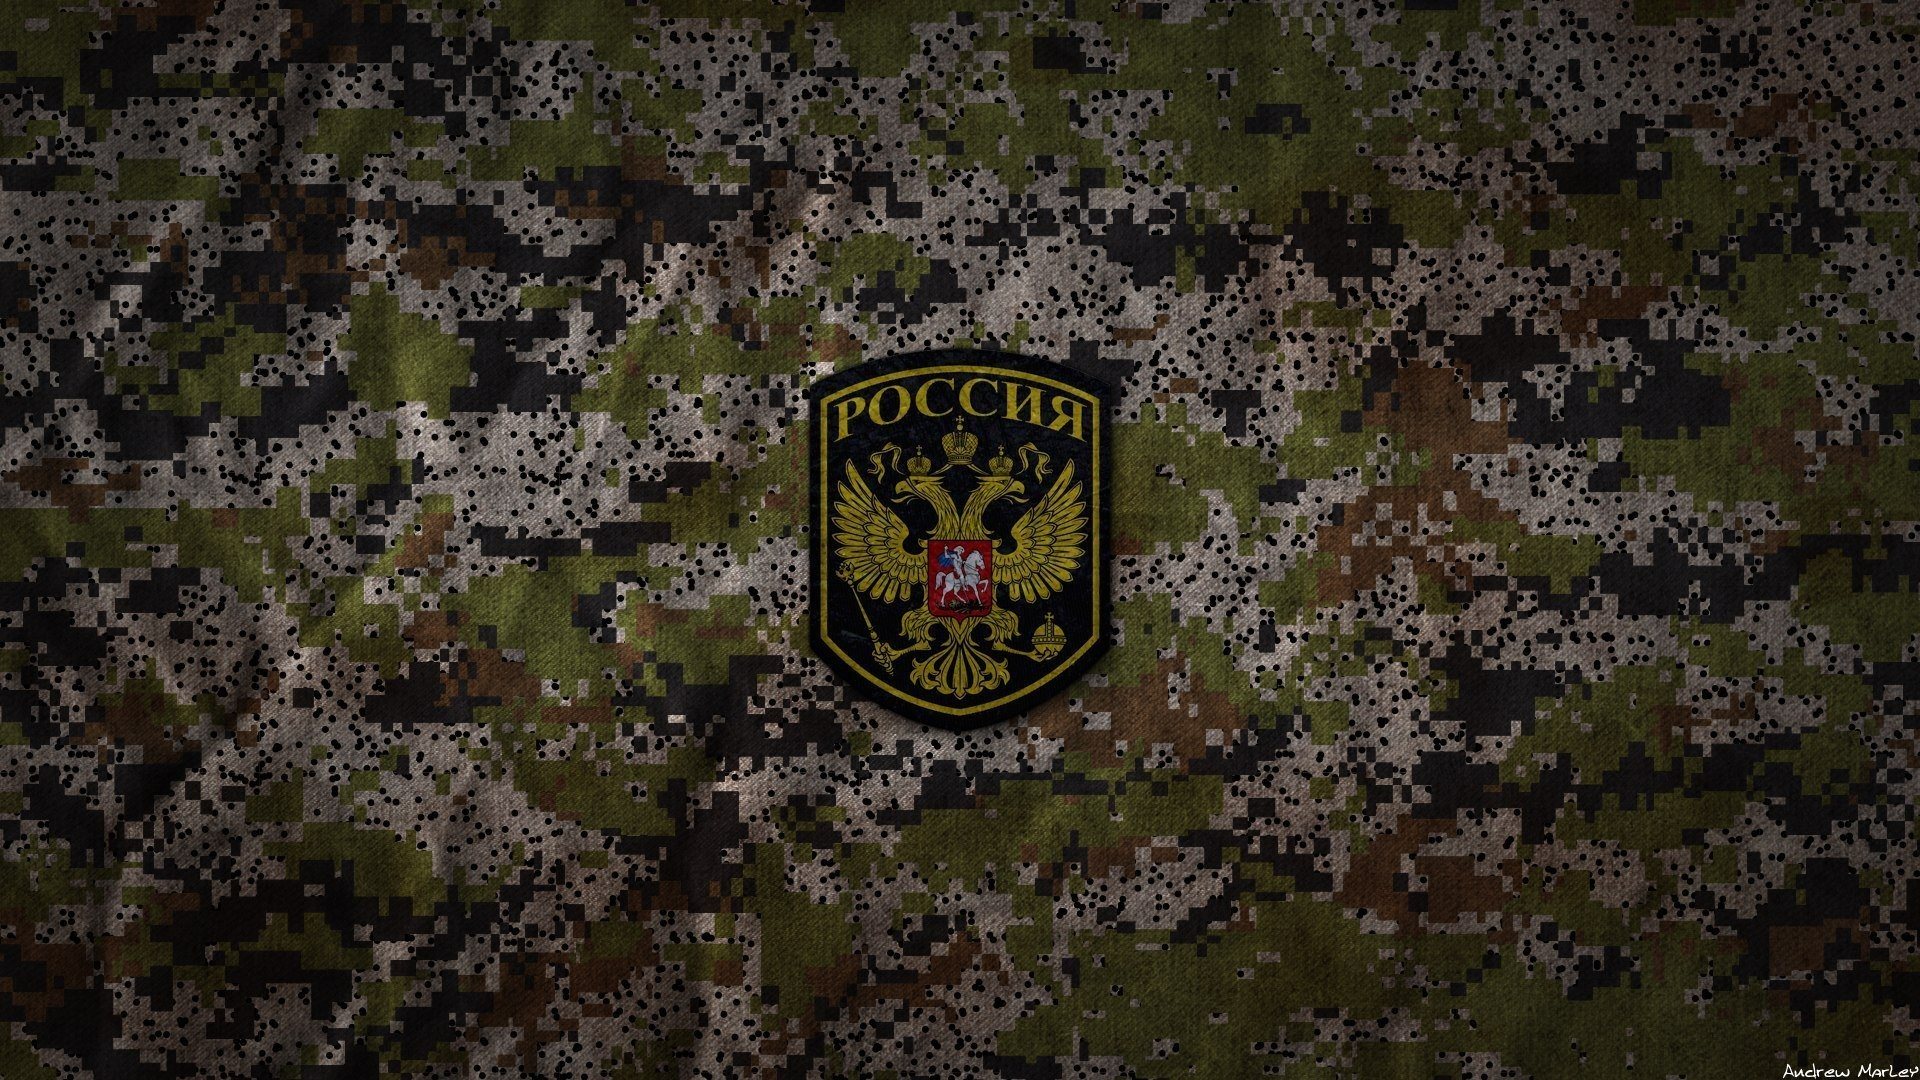 1920x1080 the army russia camouflage twilight woodland camouflage digital camo by  andrew marley